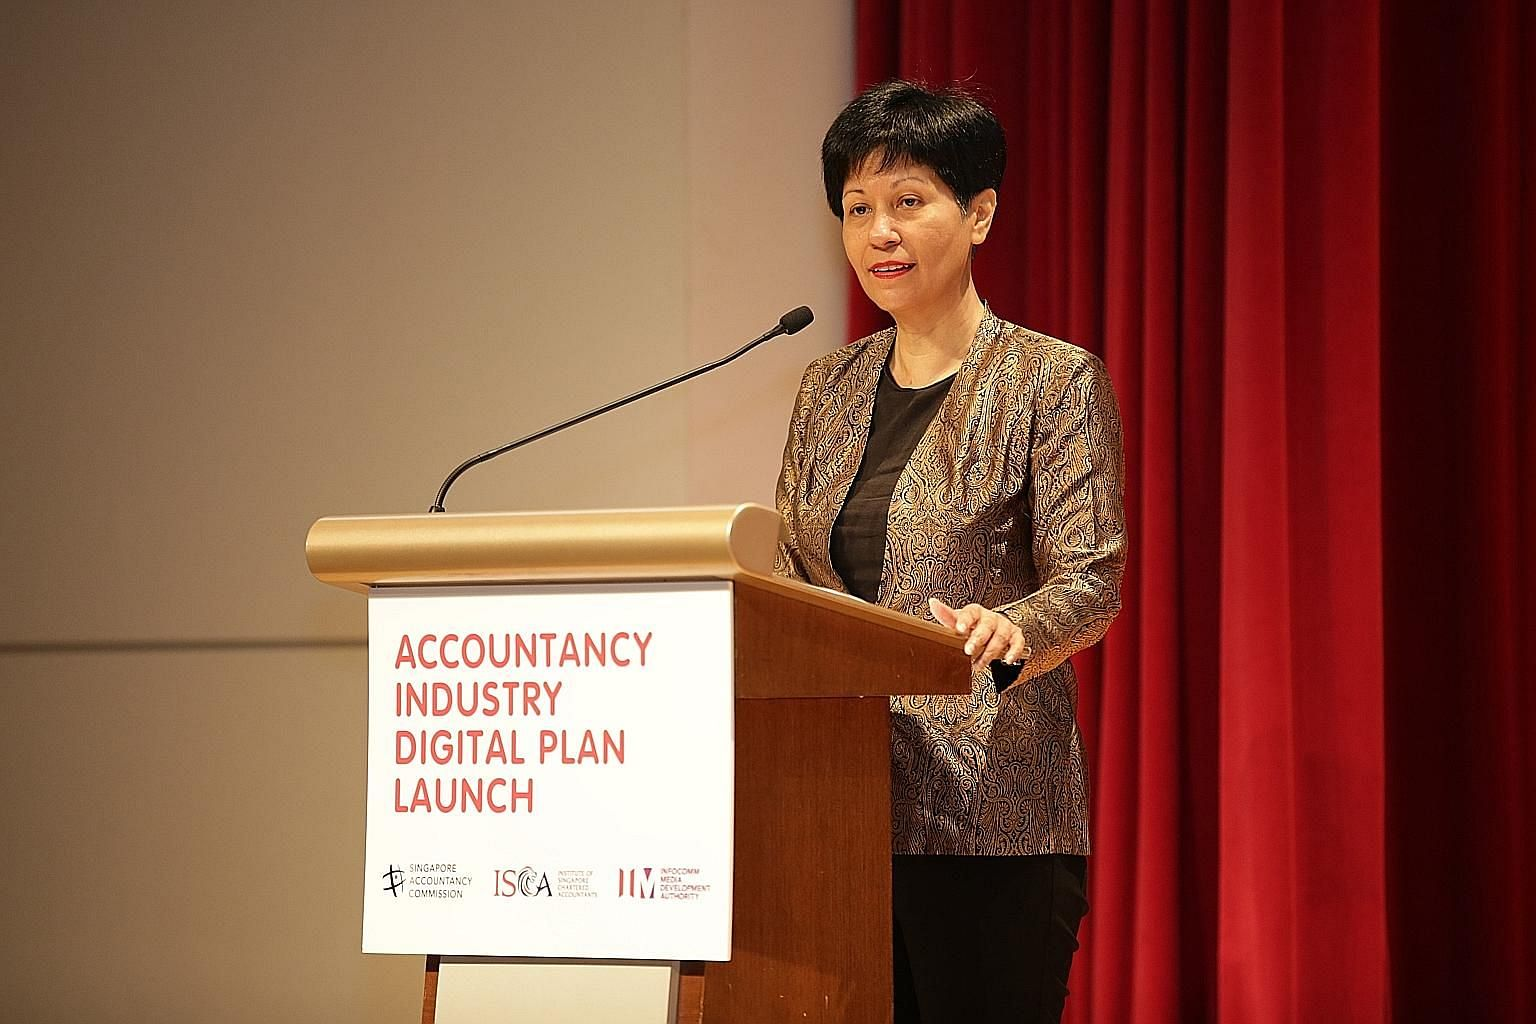 Minister in the Prime Minister's Office Indranee Rajah at the launch of the Accountancy Industry Digital Plan yesterday. The guide will help small and medium-sized practices, which account for 98 per cent of the accountancy sector, to explore opportu